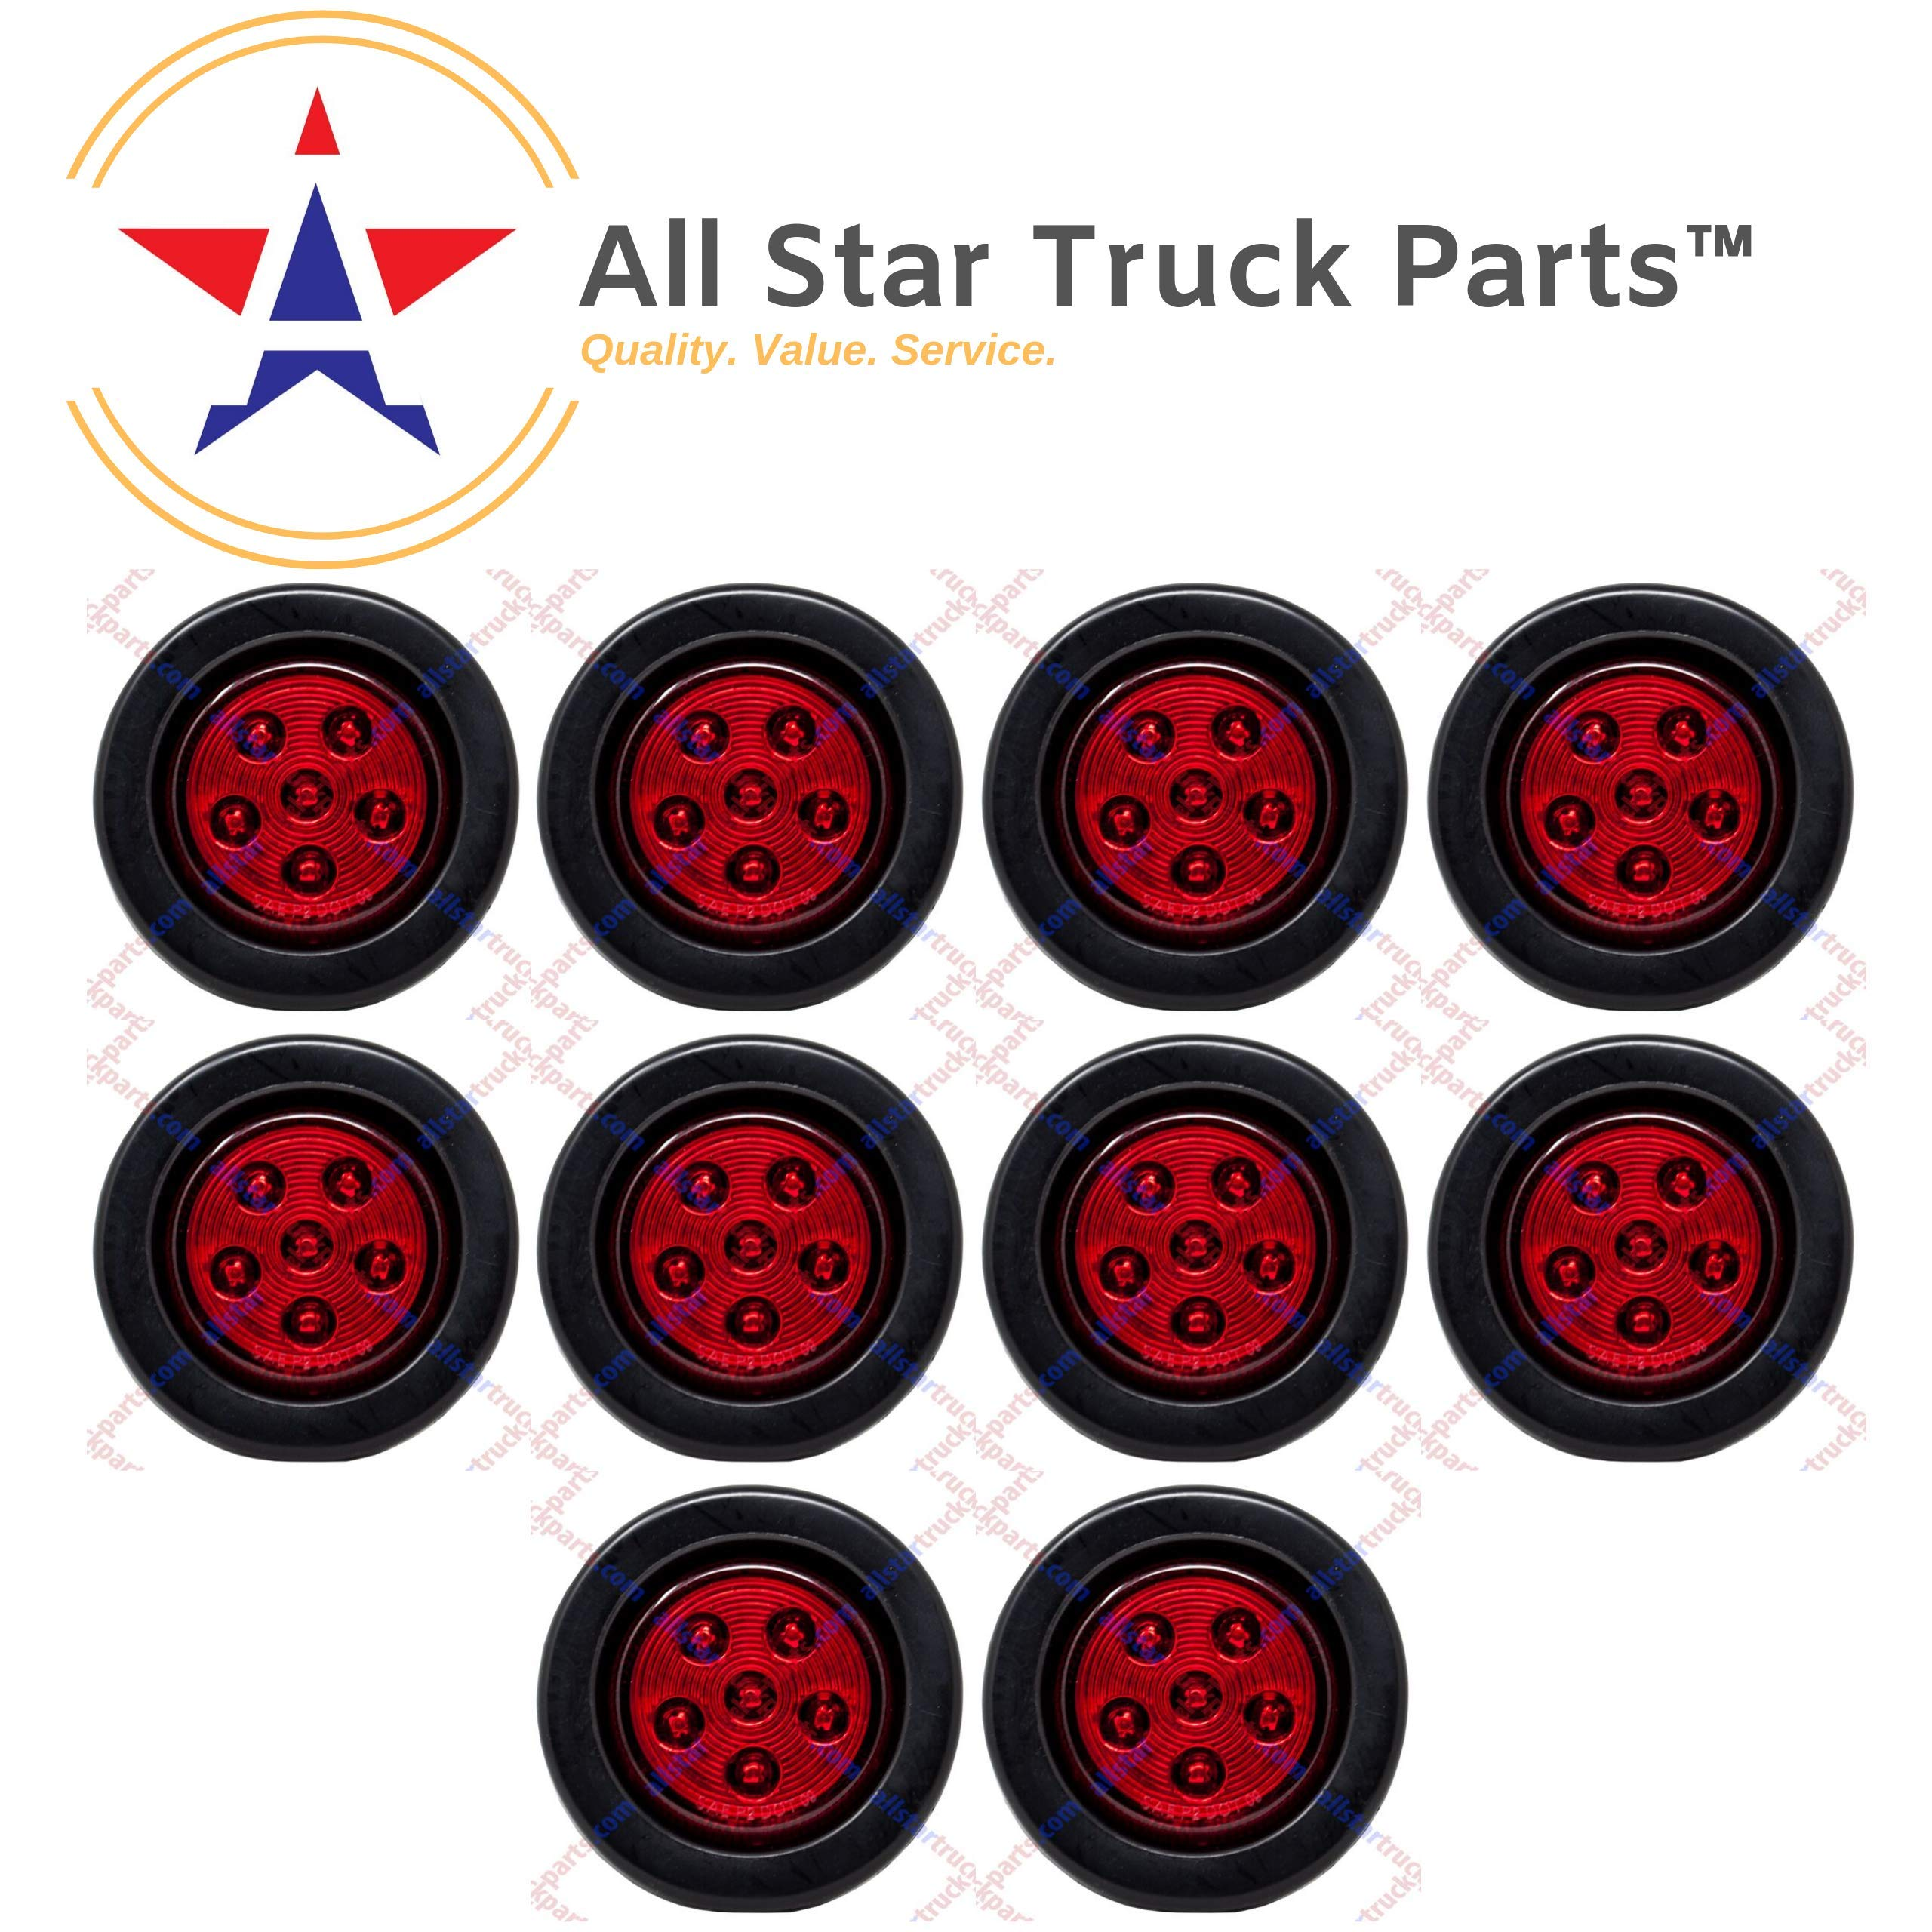 Qty 10-2.5'' Round 6 LED Red Light Truck Trailer Side Marker Clearance Grommet Kit by All Star Truck Parts